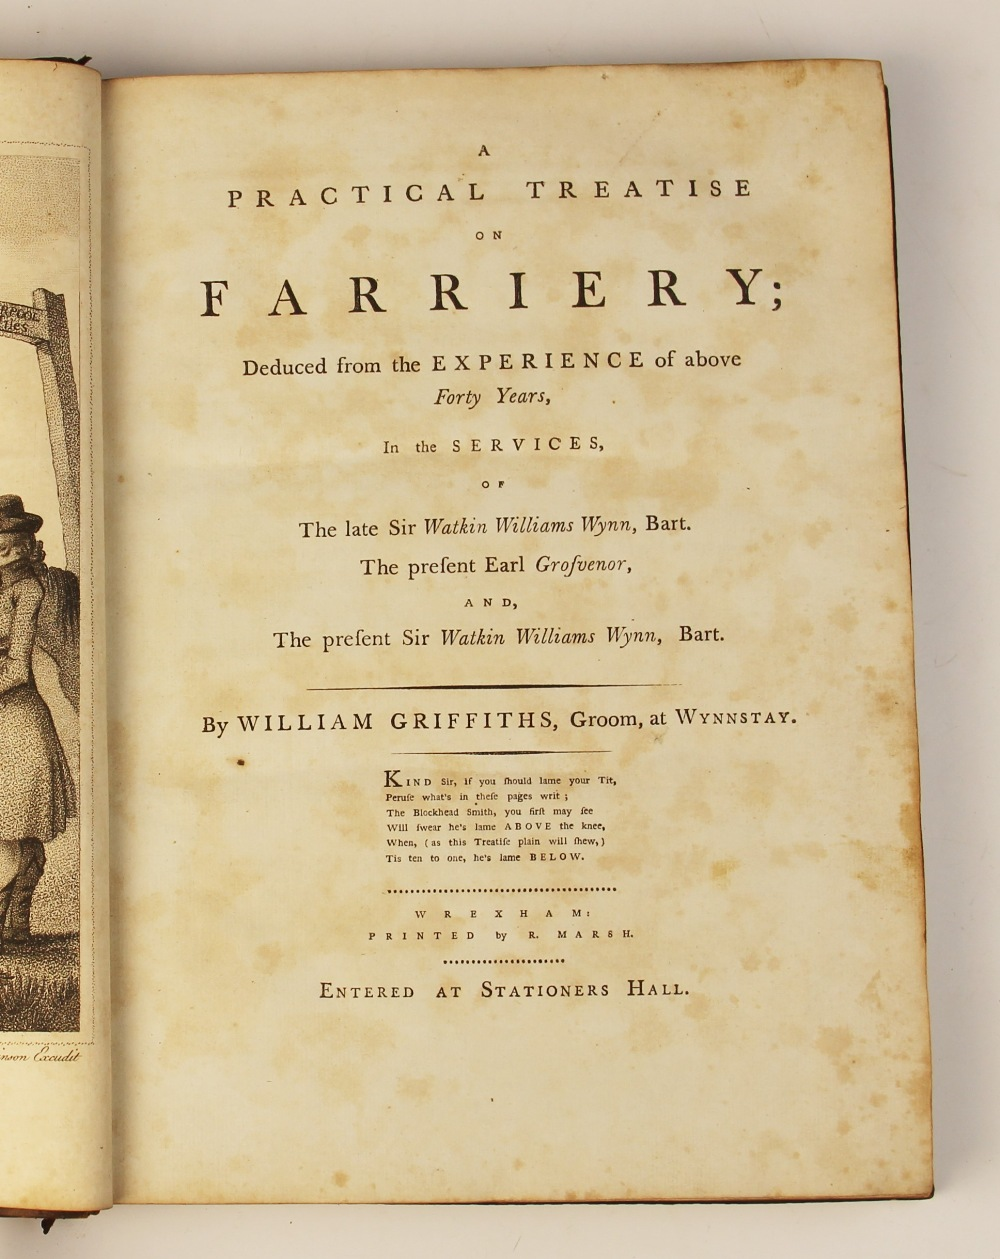 Griffiths (W), A PRACTICAL TREATISE ON FARRIERY, DEDUCED FROM THE EXPERIENCE OF ABOVE FORTY YEARS, - Image 7 of 9